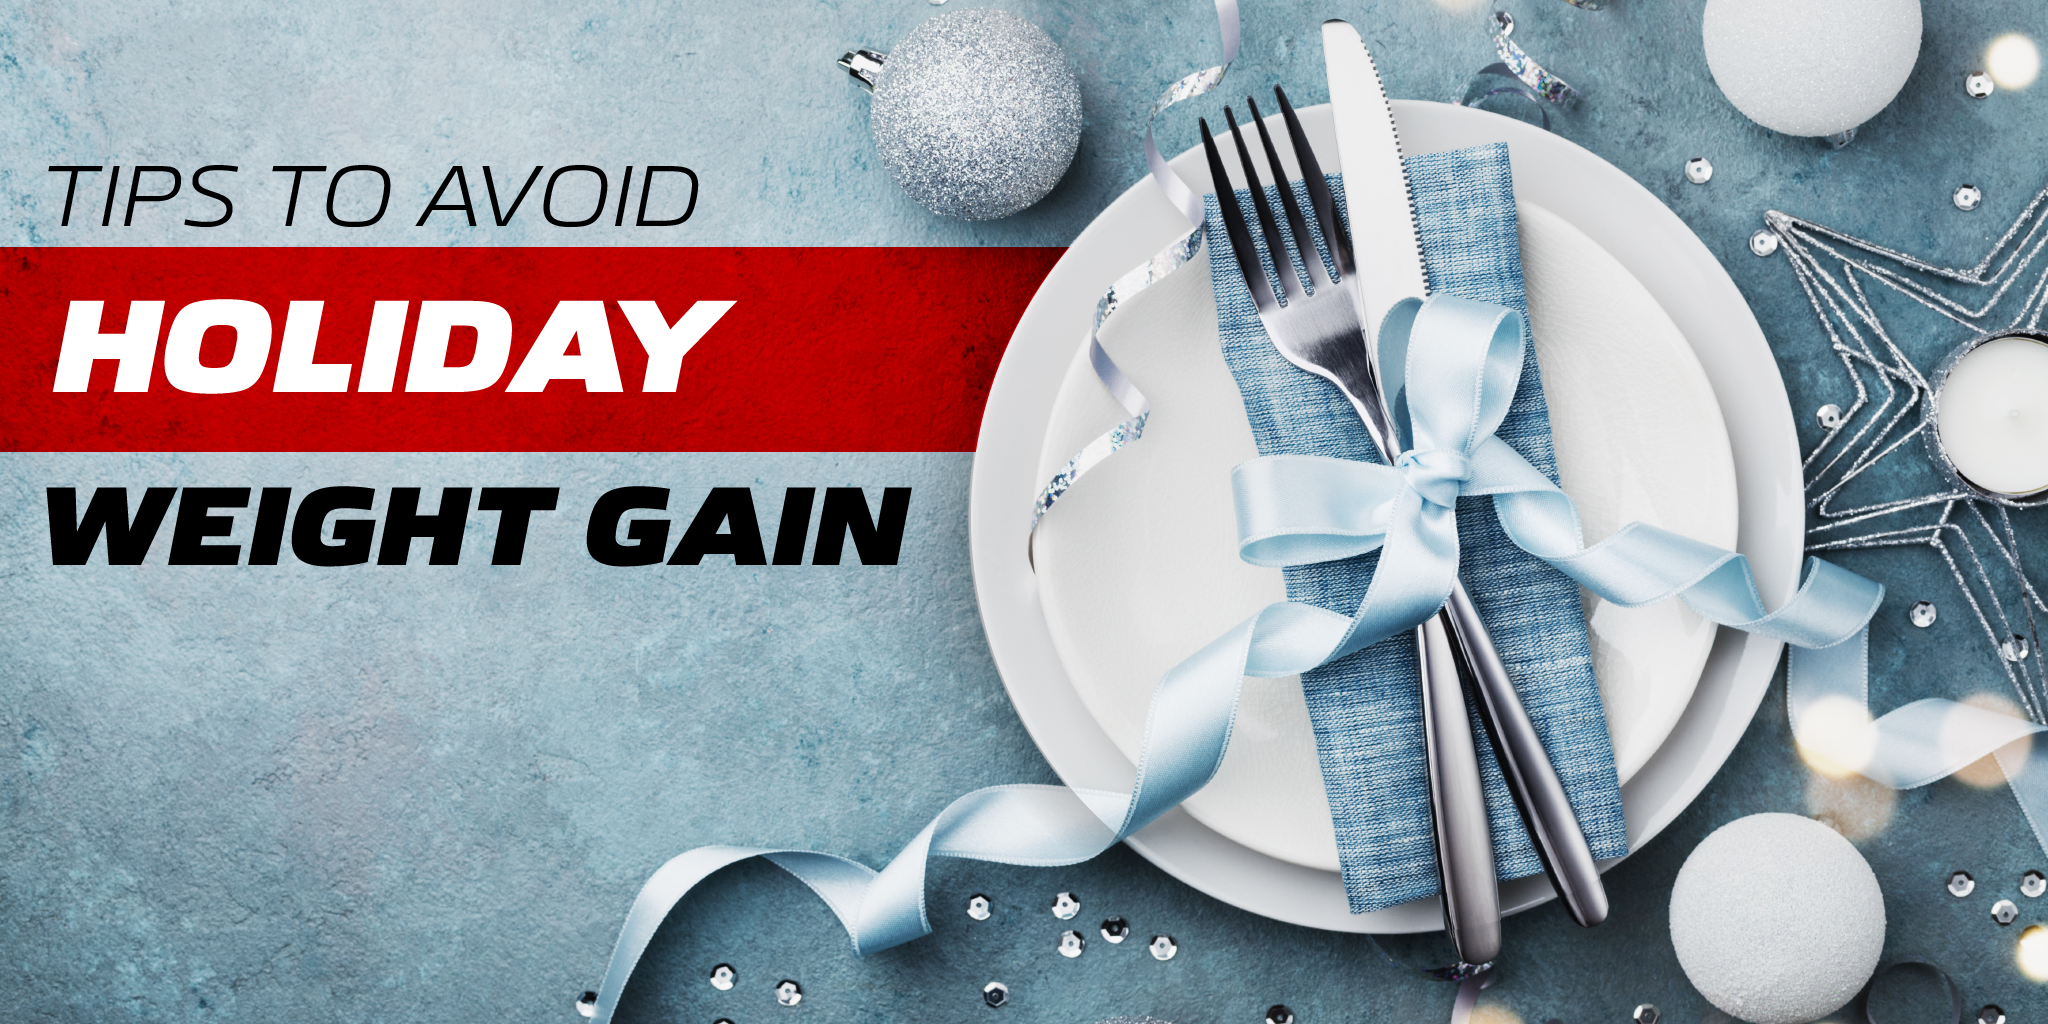 6 Tips to Successfully Staying Slim this Holiday Season